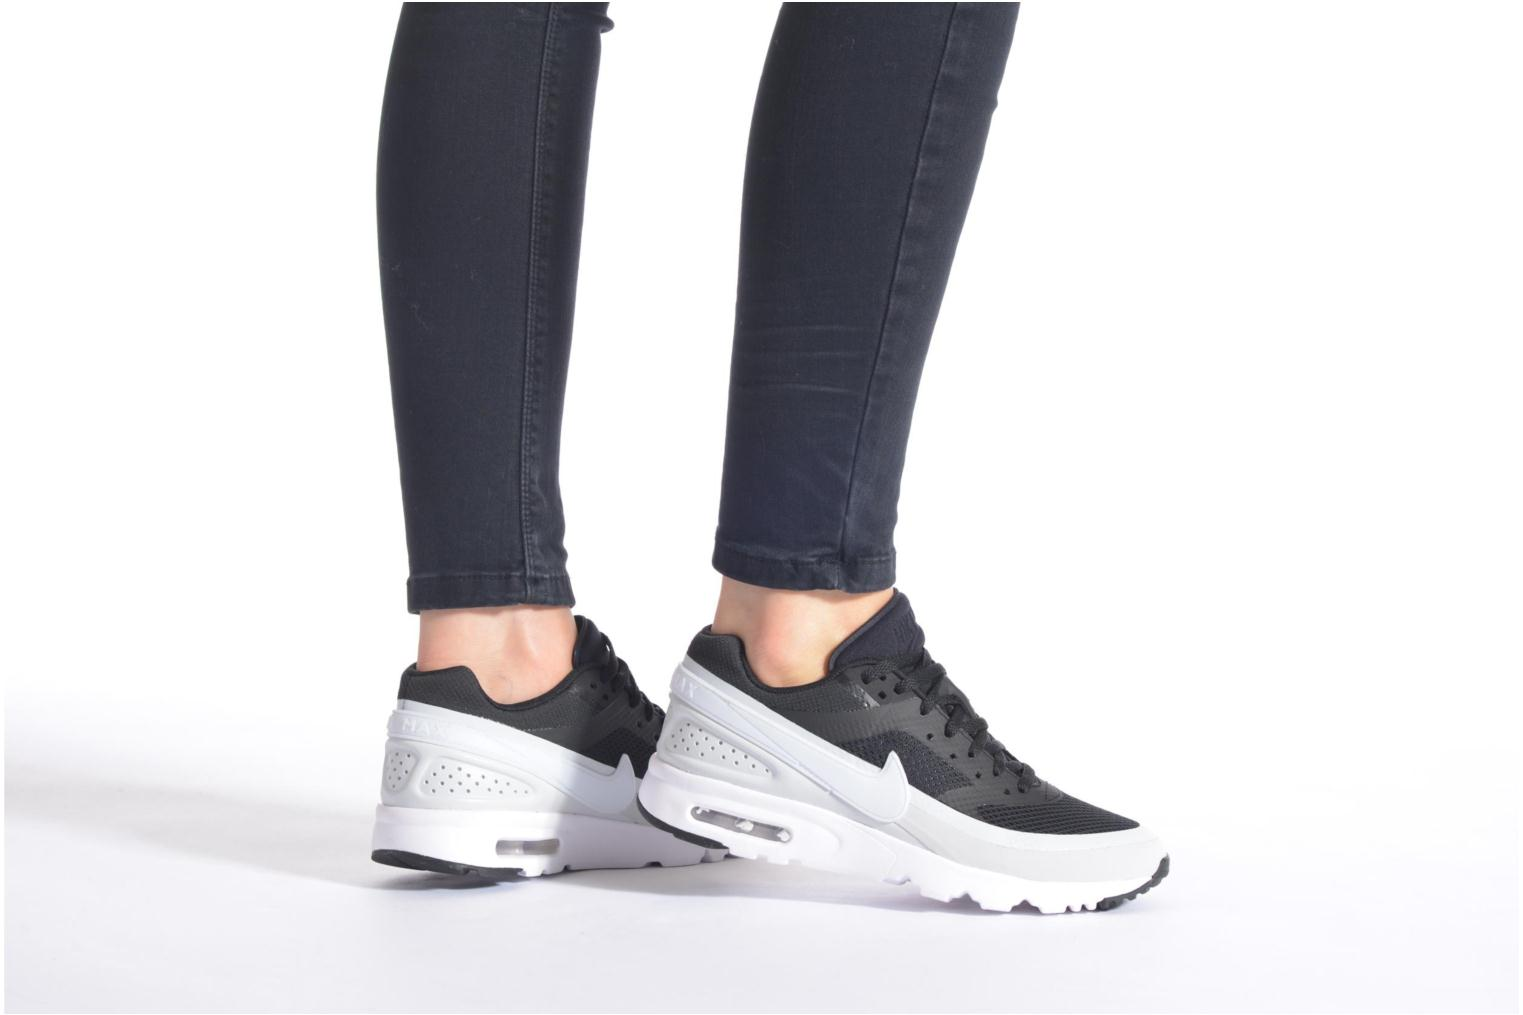 W Air Max Bw Ultra Brght Crmsn/Atmc Pnk-White-Blk